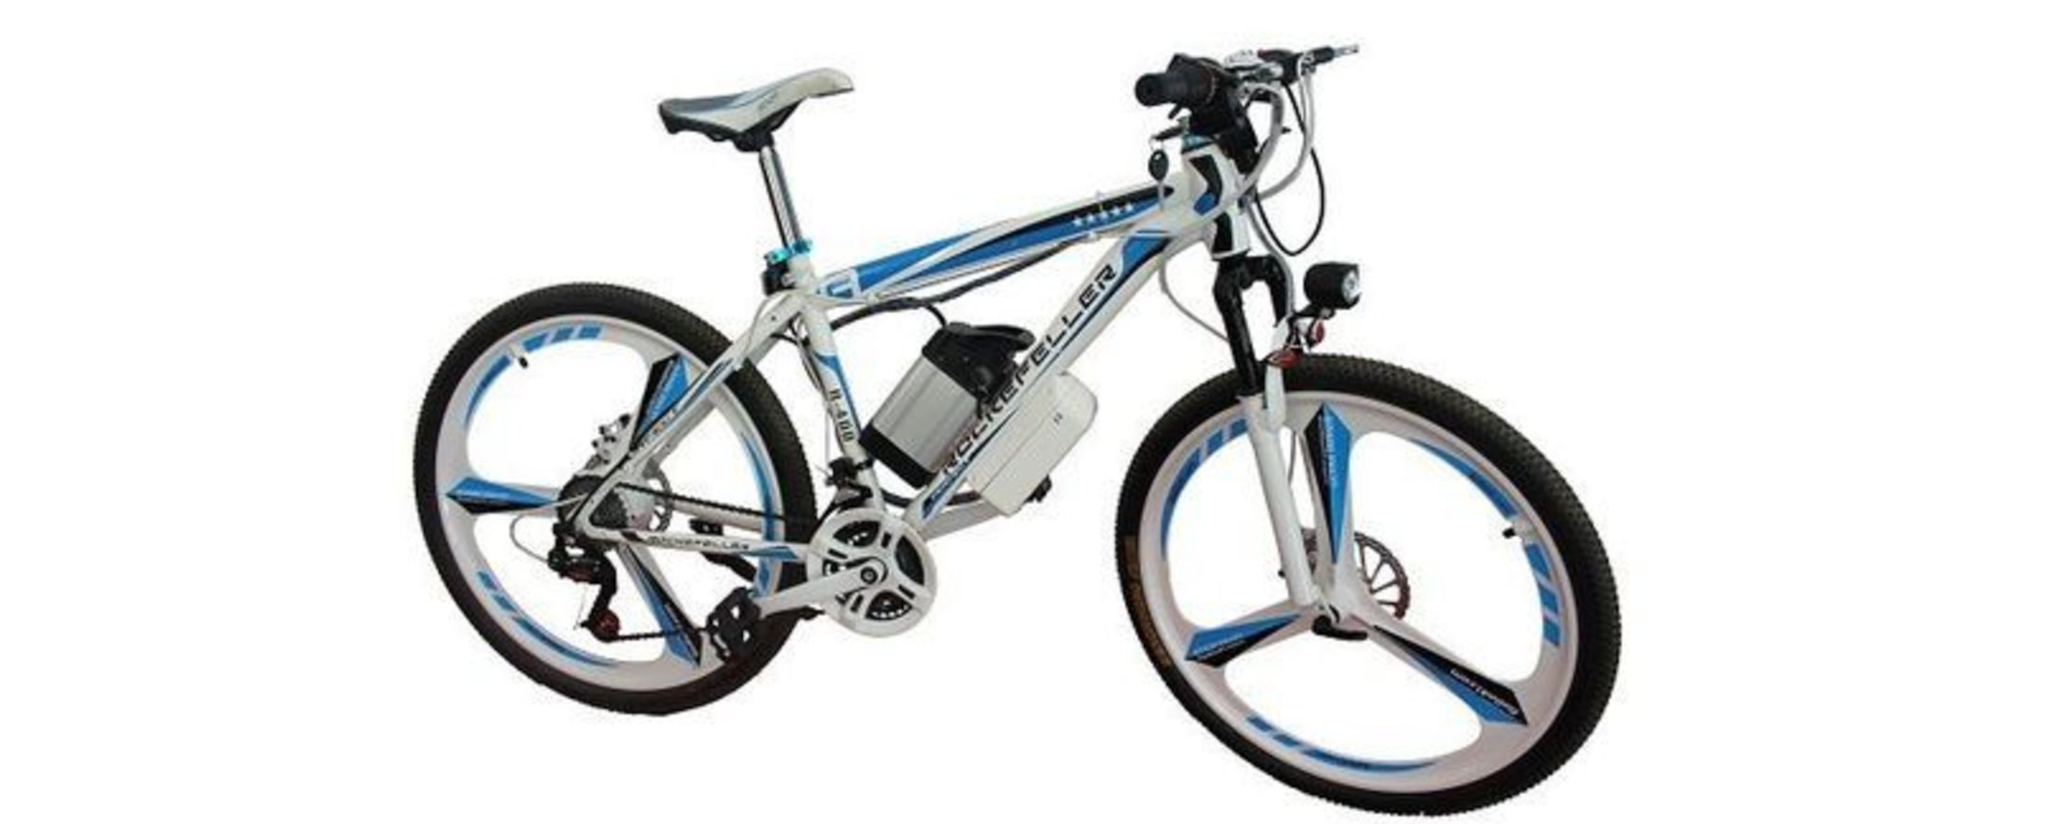 EZRIDE MOBILITY SOLUTION PVT LTD - Bike and Motorcycle Rental Services in Yeshwanthpura, Bangalore